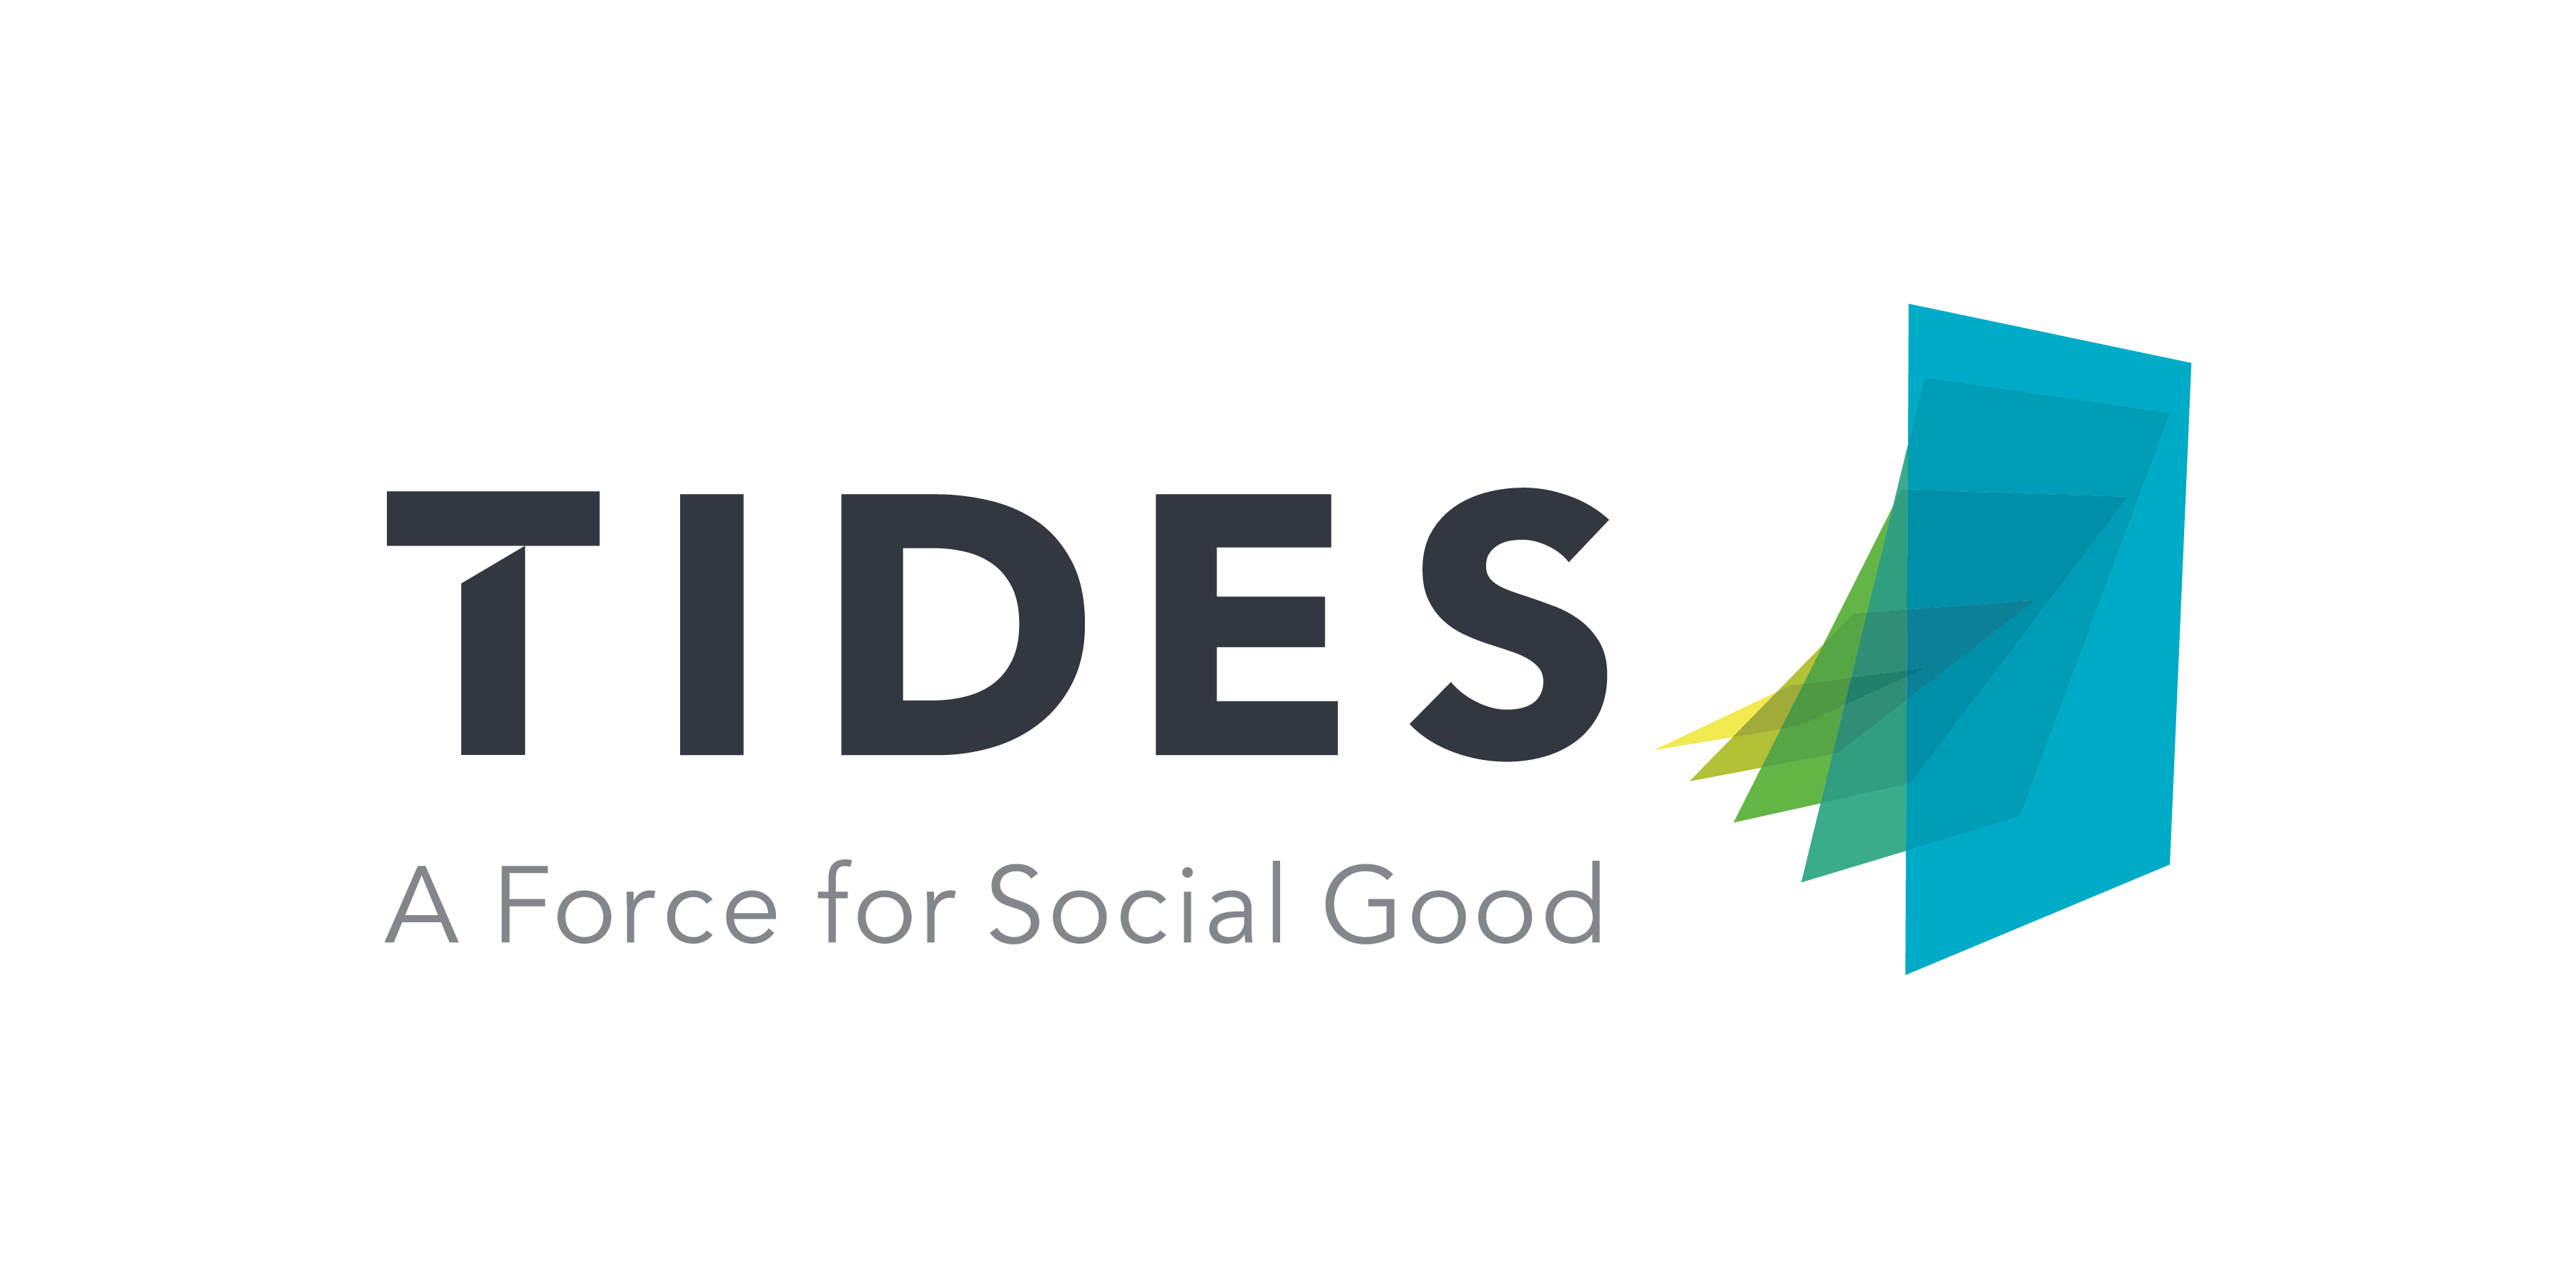 Tides logo, a force for Social Good, Get Us PPE partner